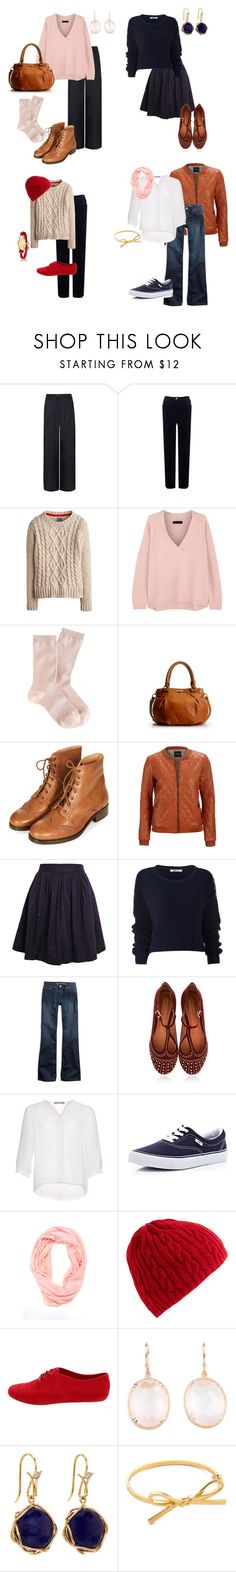 4 outfits for fall by suzyn on Polyvore featuring мода, Jonathan Saunders, Soaked in Luxury, Joules, SELECTED, American Eagle Outfitters, AllSaints, Chinti and Parker, Dash and J.Crew